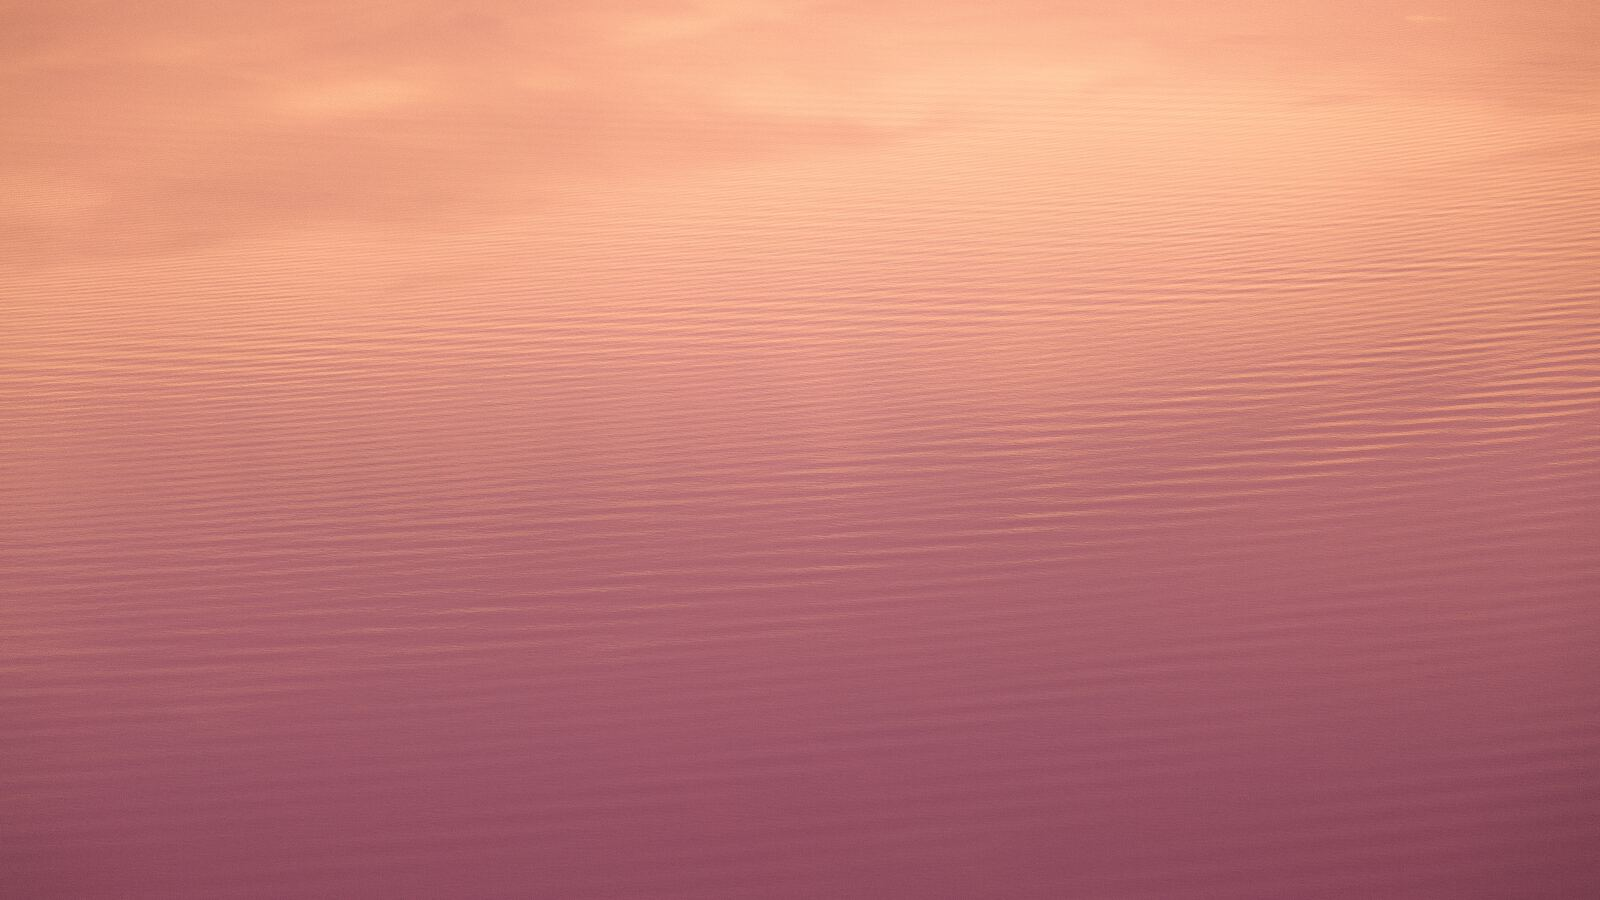 water-reflecting-sky-minimal-5k-09.jpg